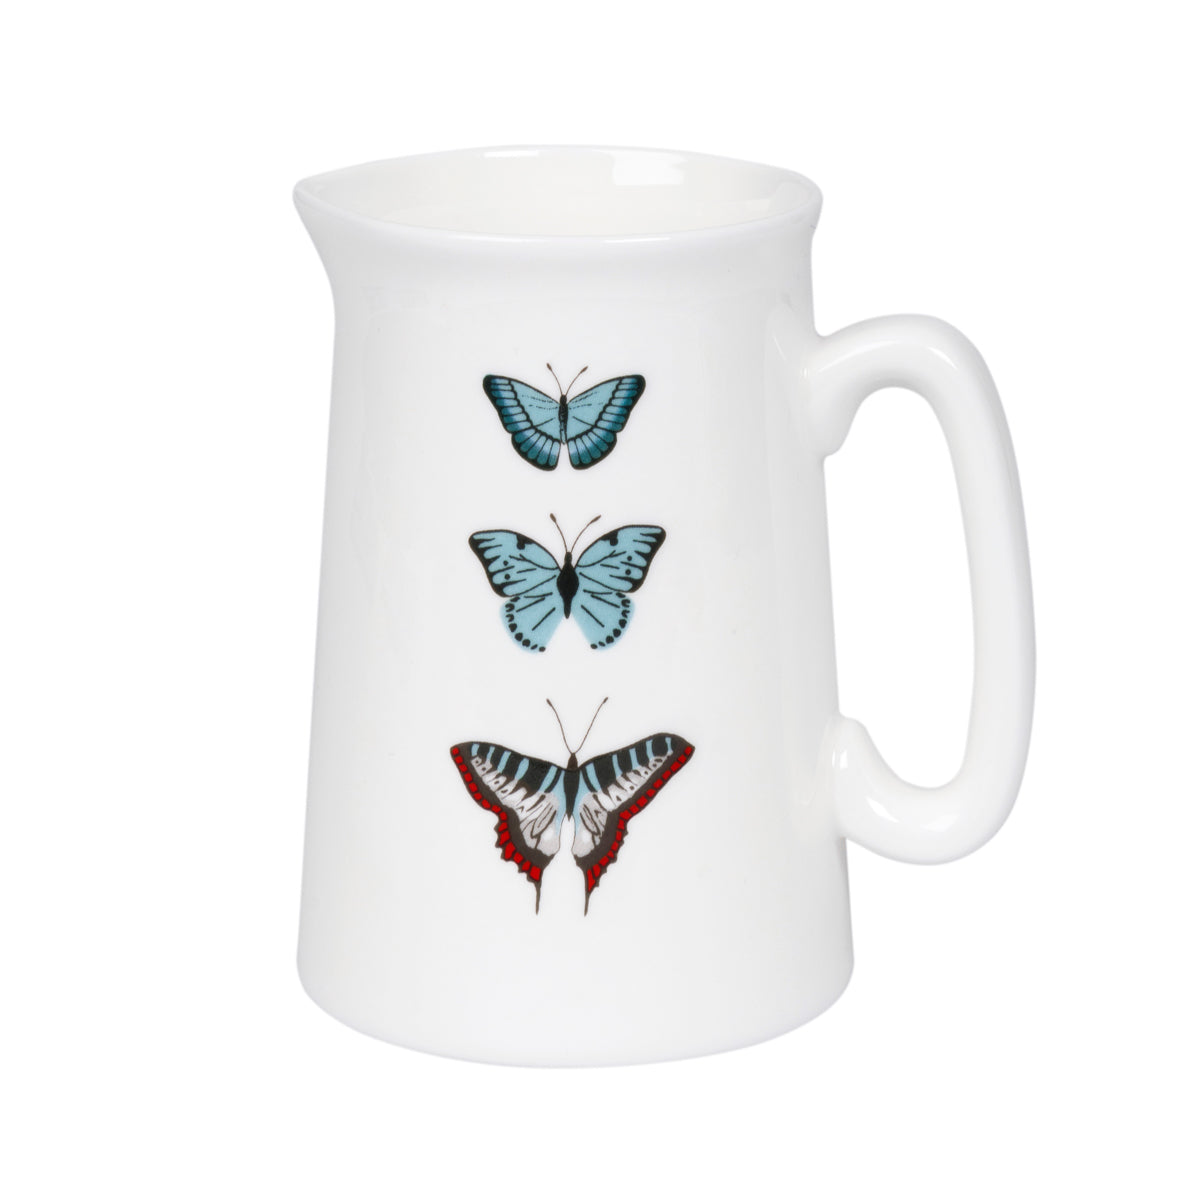 Fine bone china Butterflies Jug from Sophie Allport